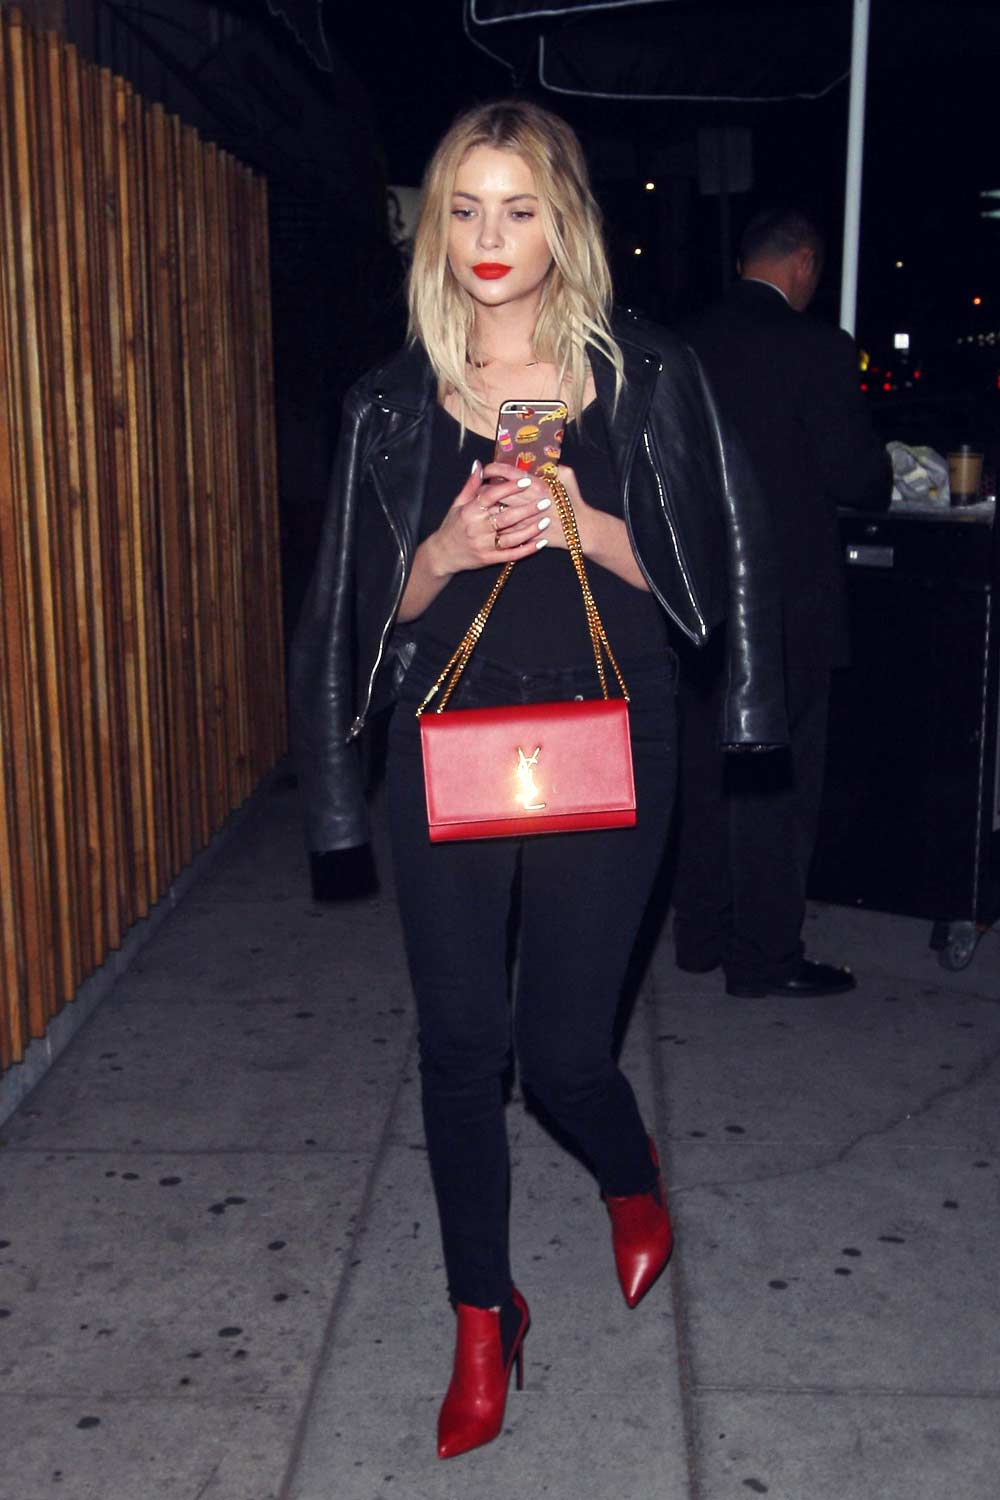 Ashley Benson leaving Nice Guy Club